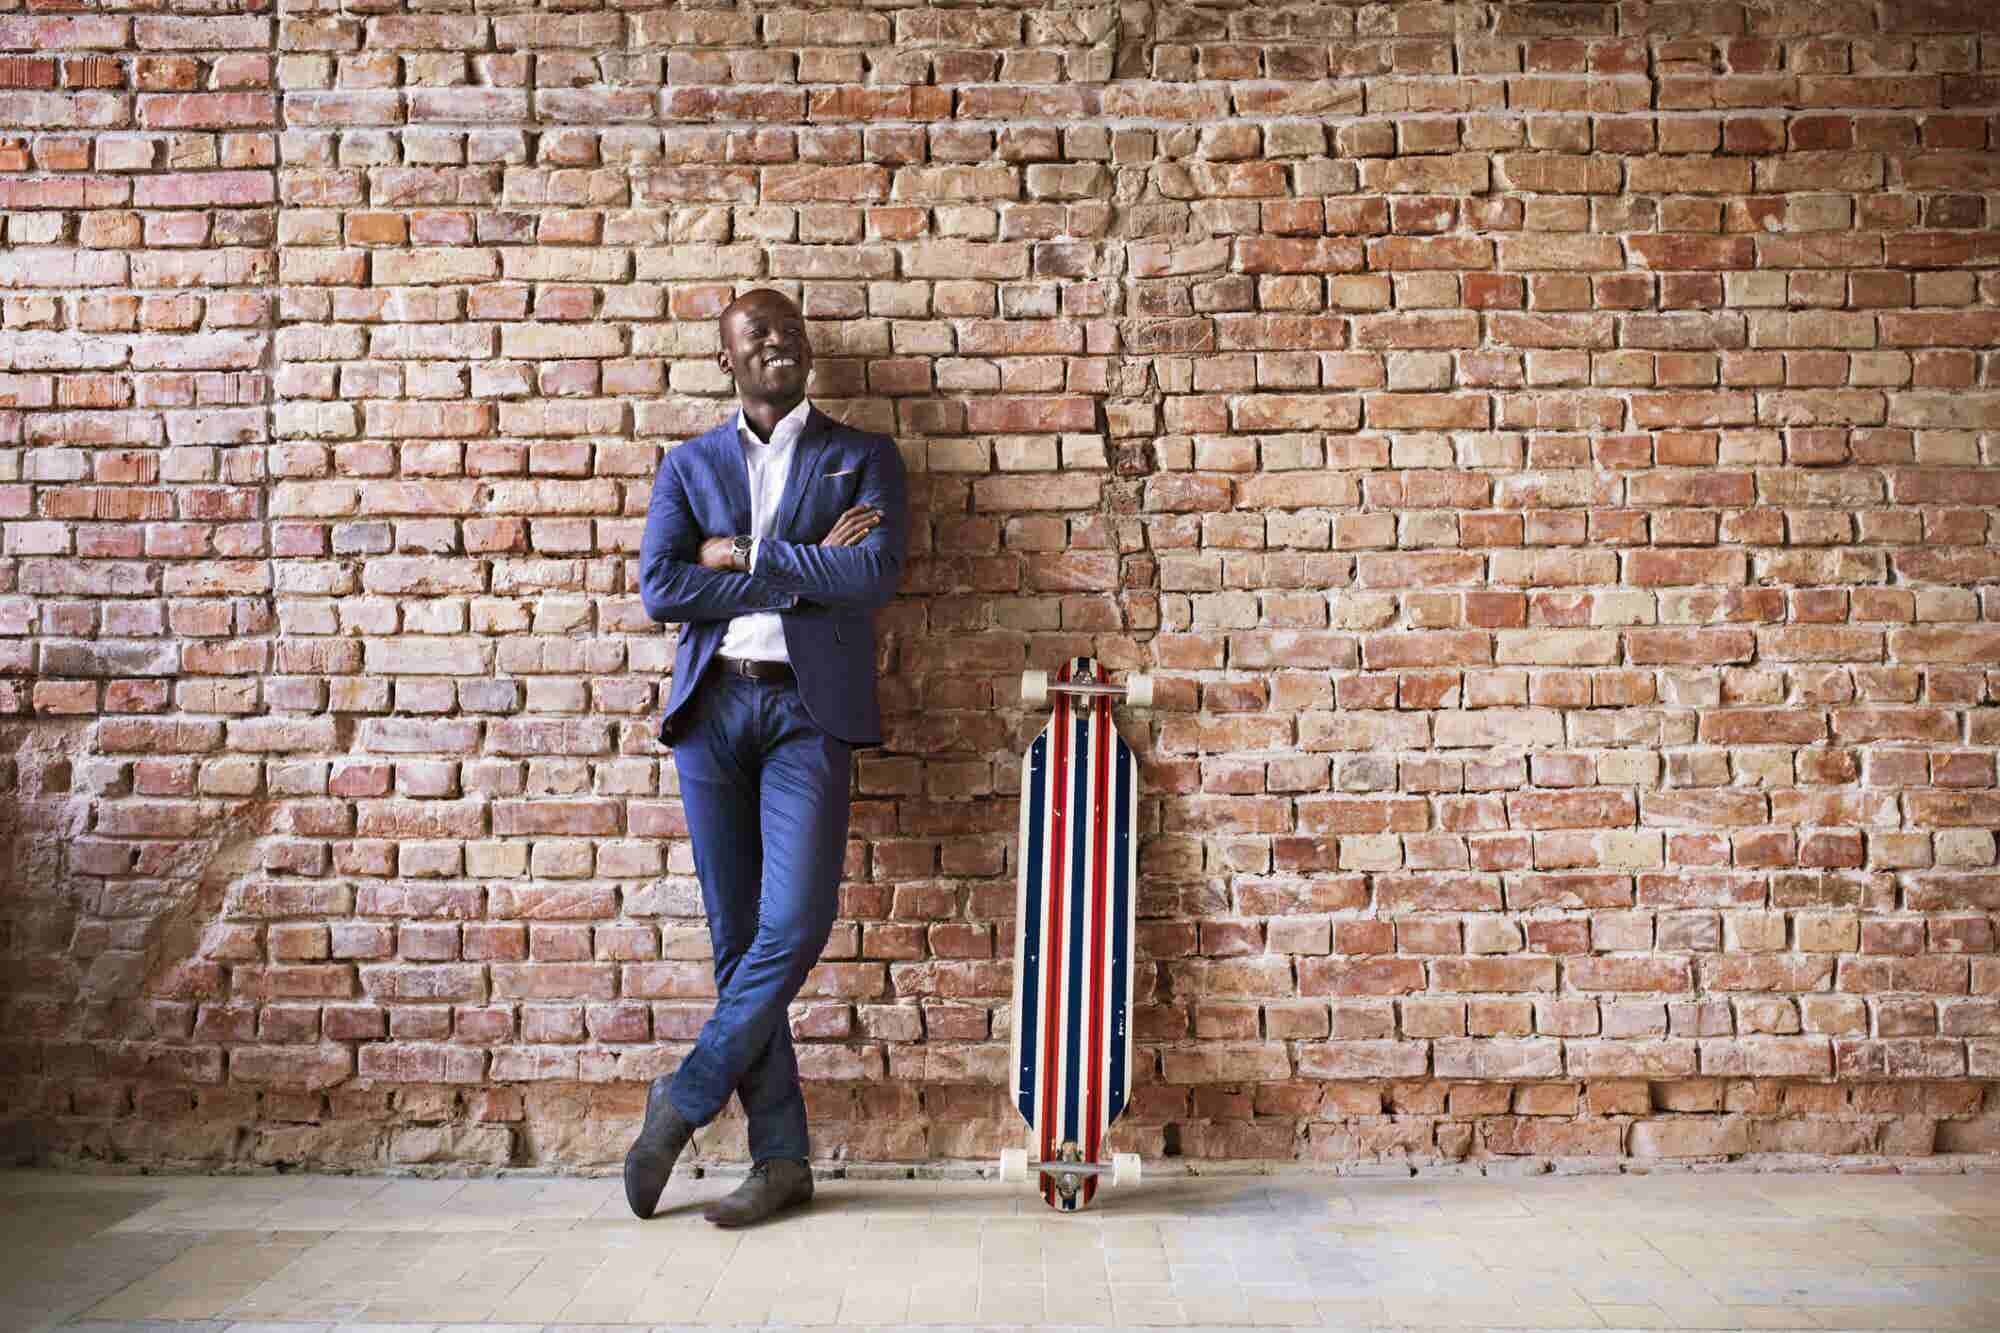 5 Important Lessons from Immigrant Entrepreneurs